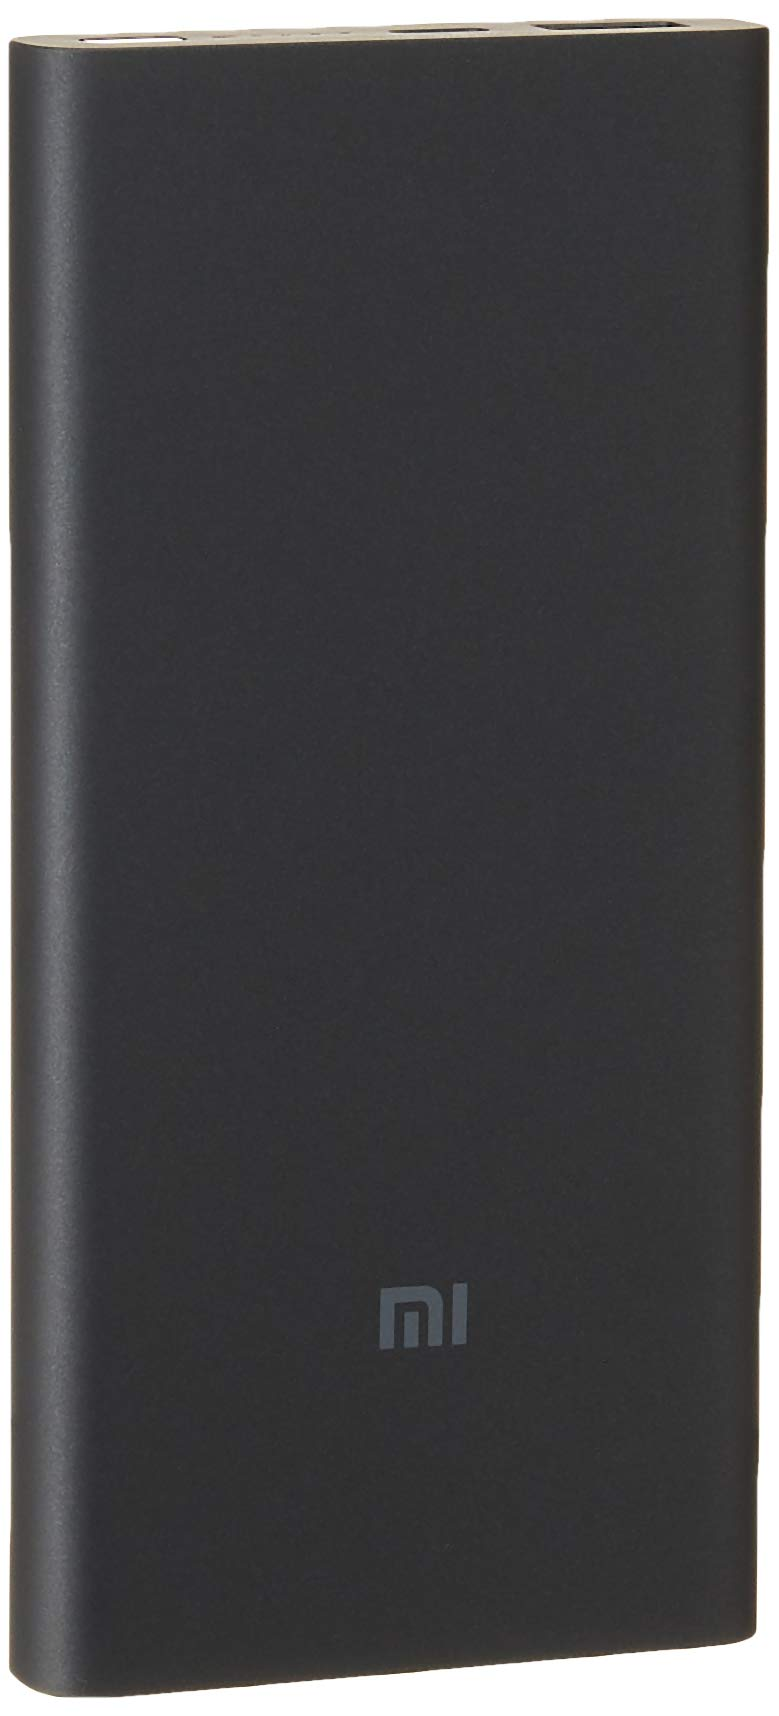 Powerbank Xiaomi Mi 10 W Mi Wireless Power Bank Essential 10000 mAh Black